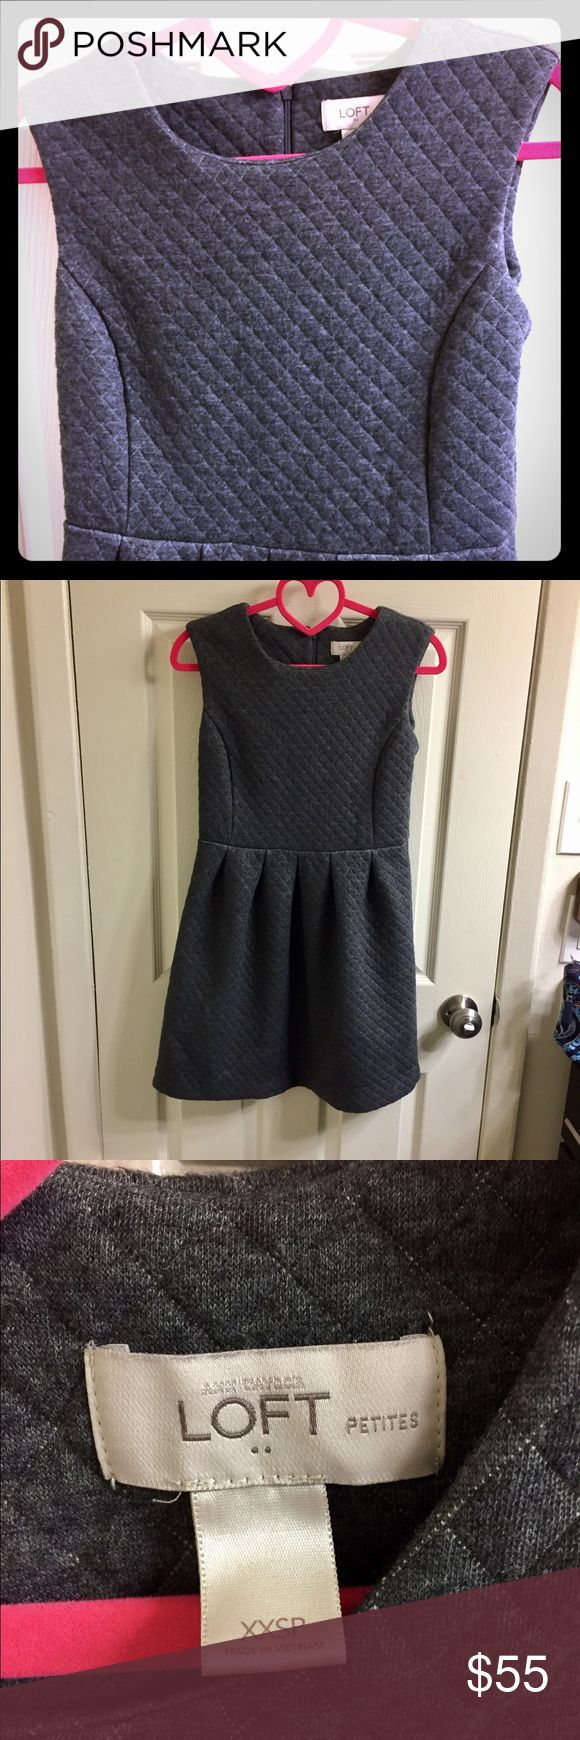 Soft Quilted Gray Fitted Petite Dress Soft Quilted Gray Fitted Petite Dress from Ann Taylor Loft. So soft and comfy, perfect for a long day at work or a private date night. All bundles receive a free gift! 👏🏻💕 LOFT Dresses Midi